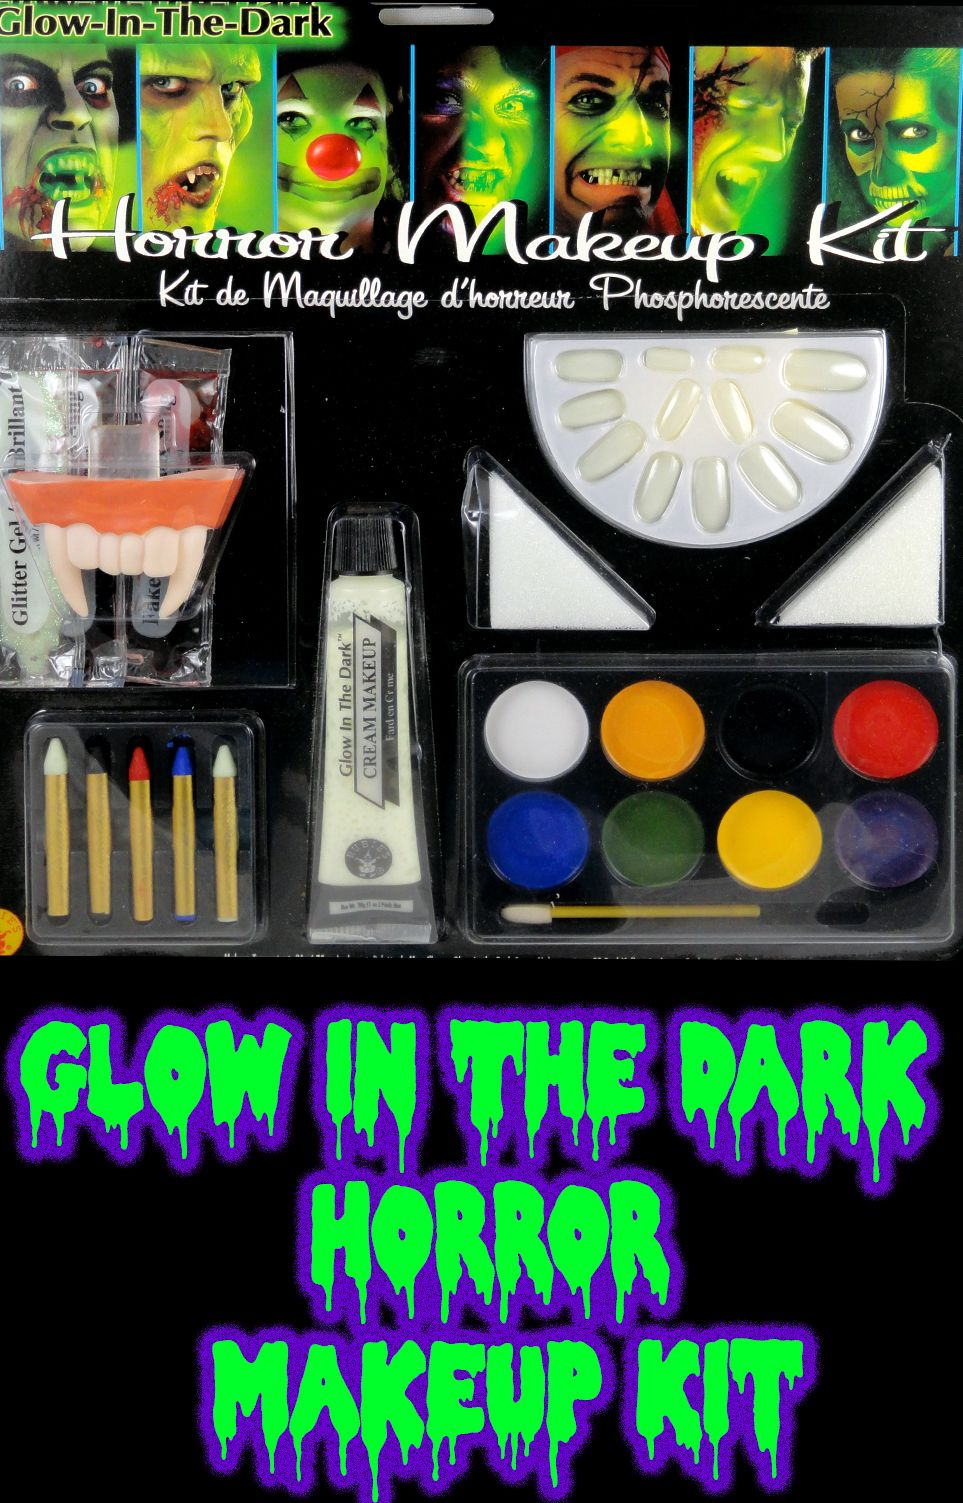 Glow In The Dark Horror Makeup Kit (With images) Glow in